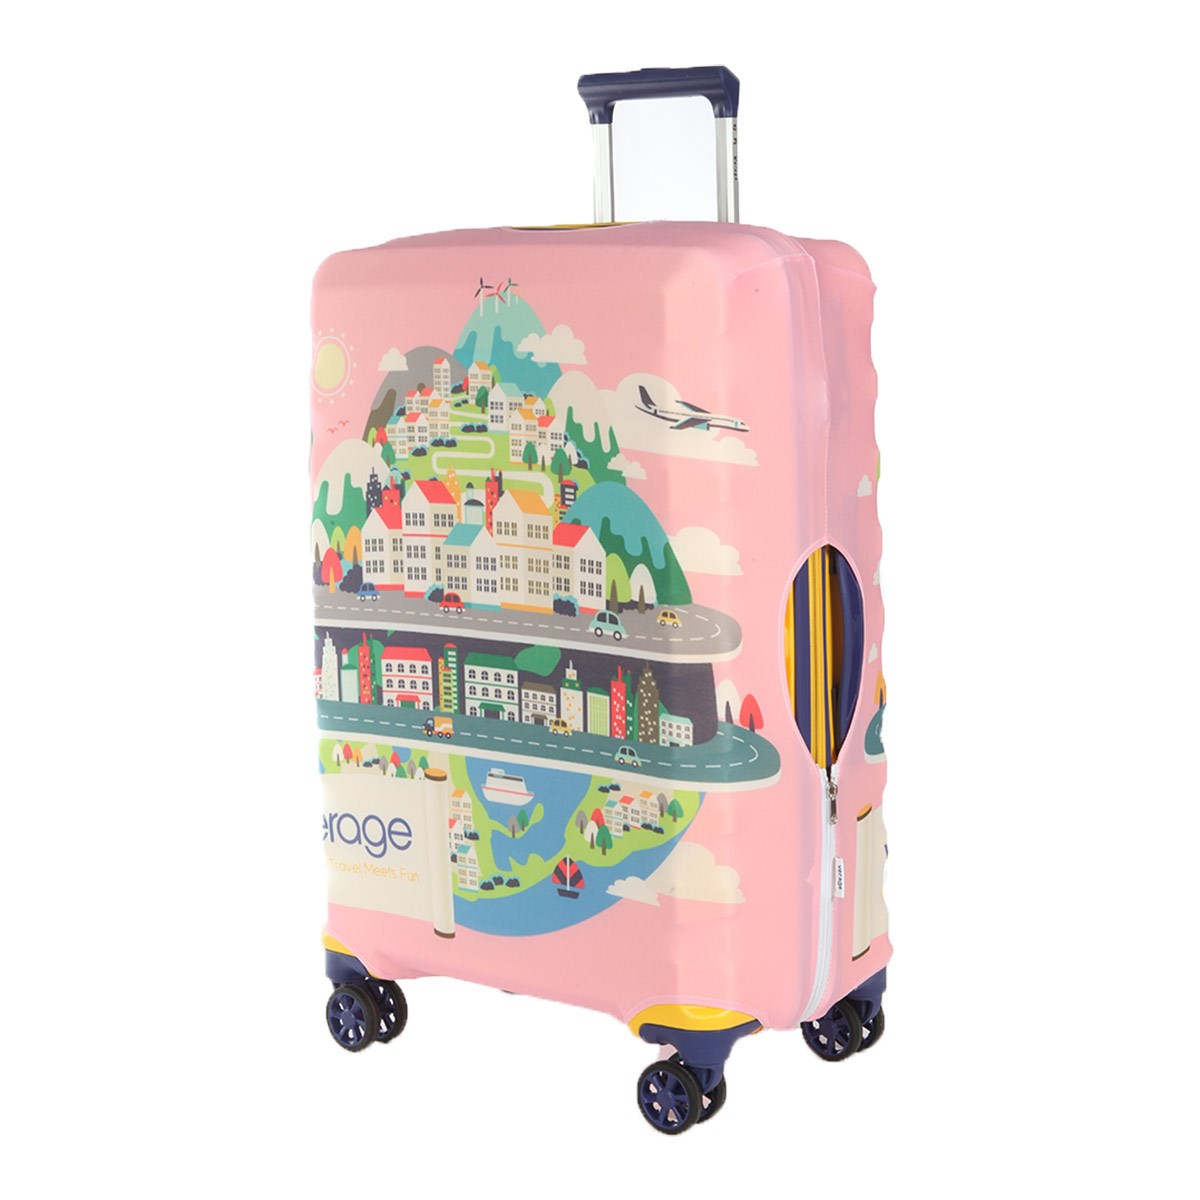 Protective cover for suitcase Verage VG5296X L